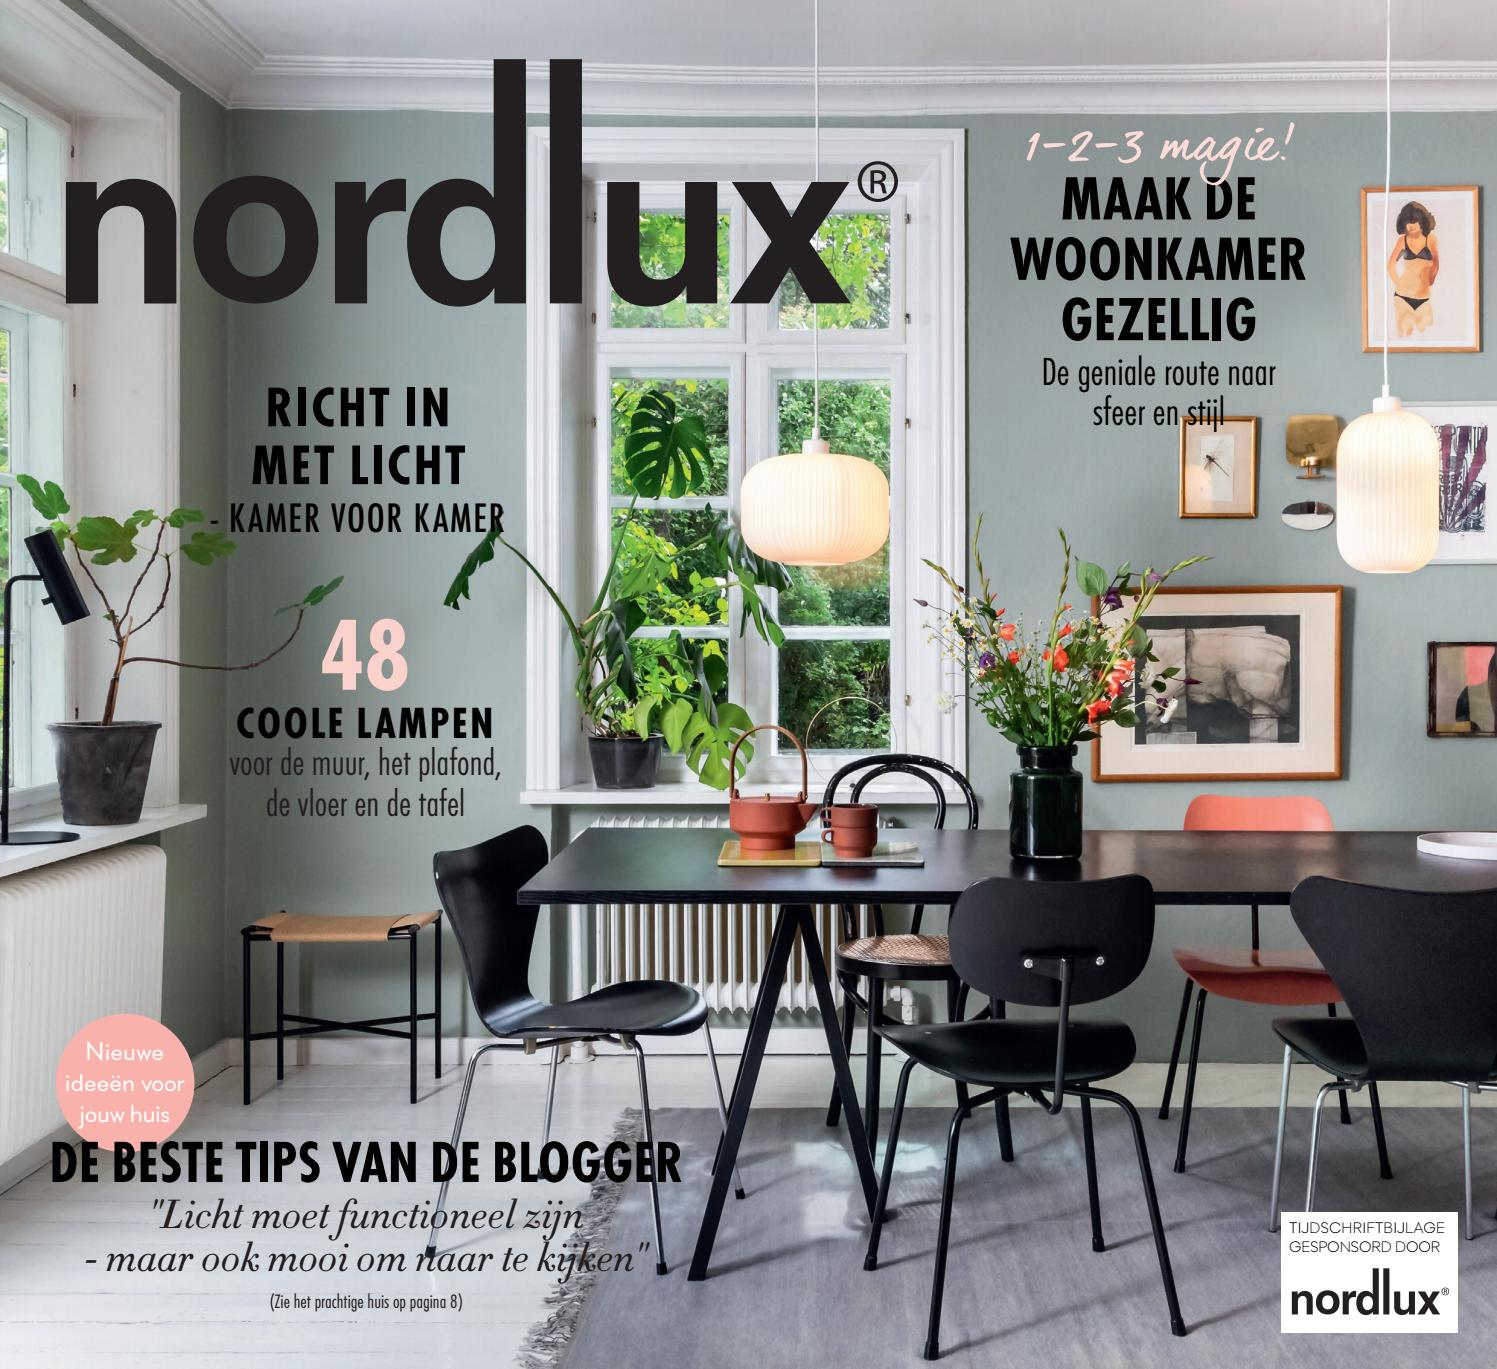 Mooie Lamp Slaapkamer Nordlux Mini Magazine 2018 Netherlands By Nordlux A S Issuu